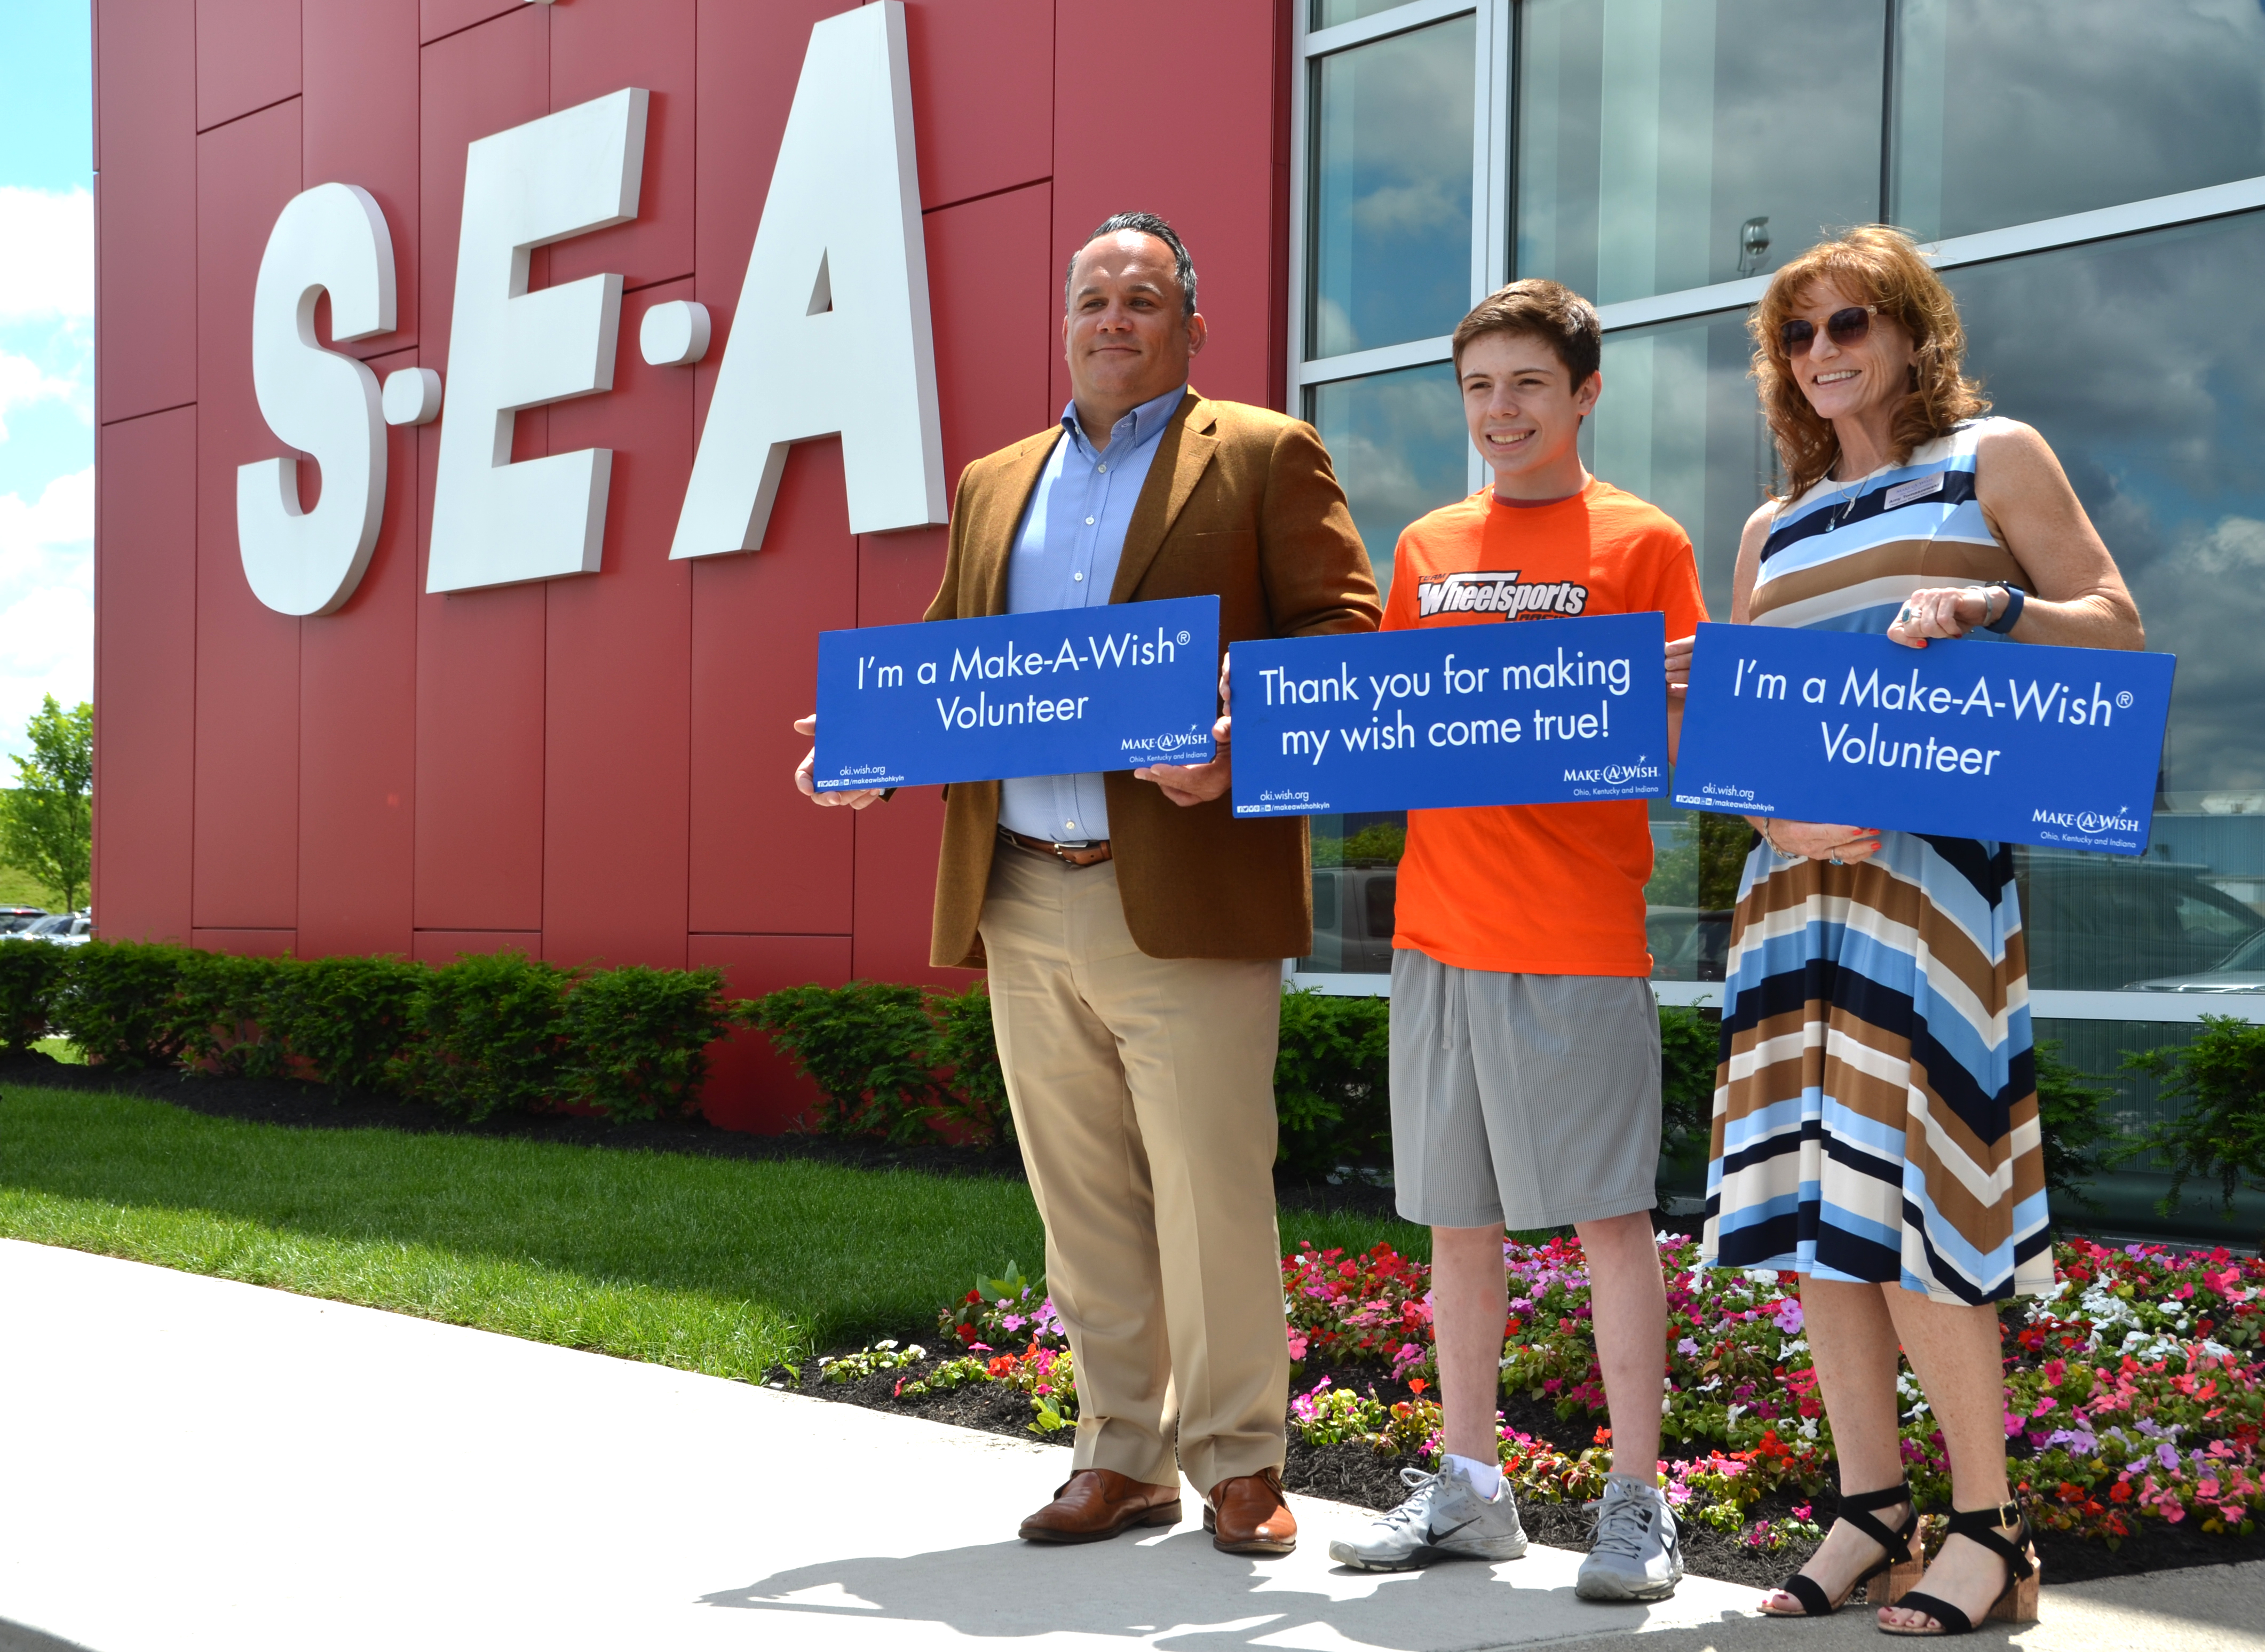 S-E-A Hosts Make-A-Wish® in Columbus